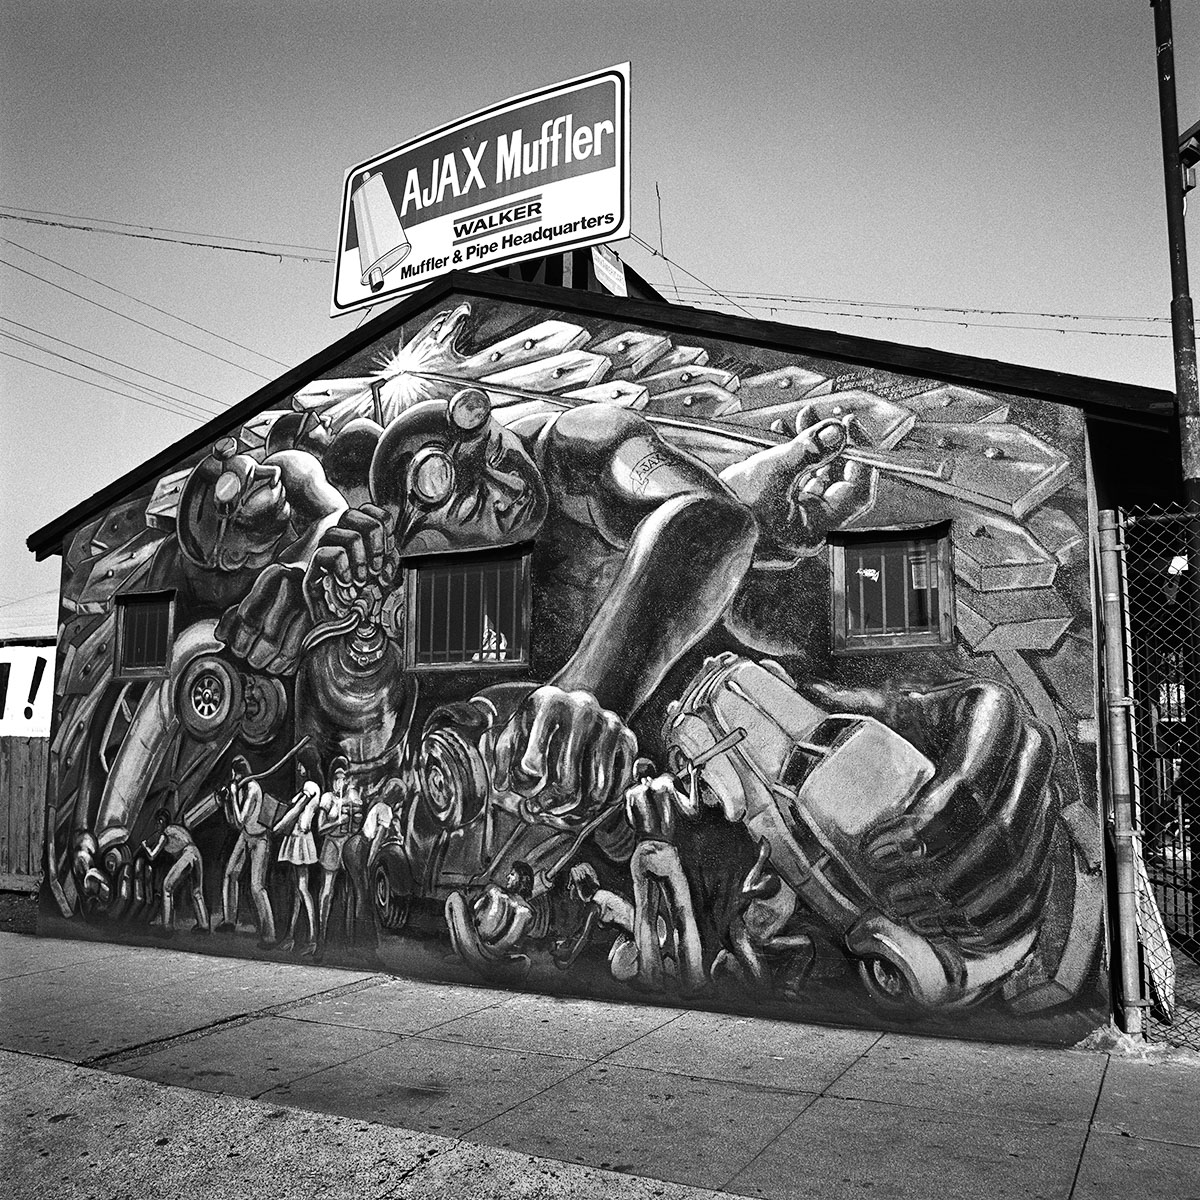 Muffler Shop, East Los Angeles, 1978